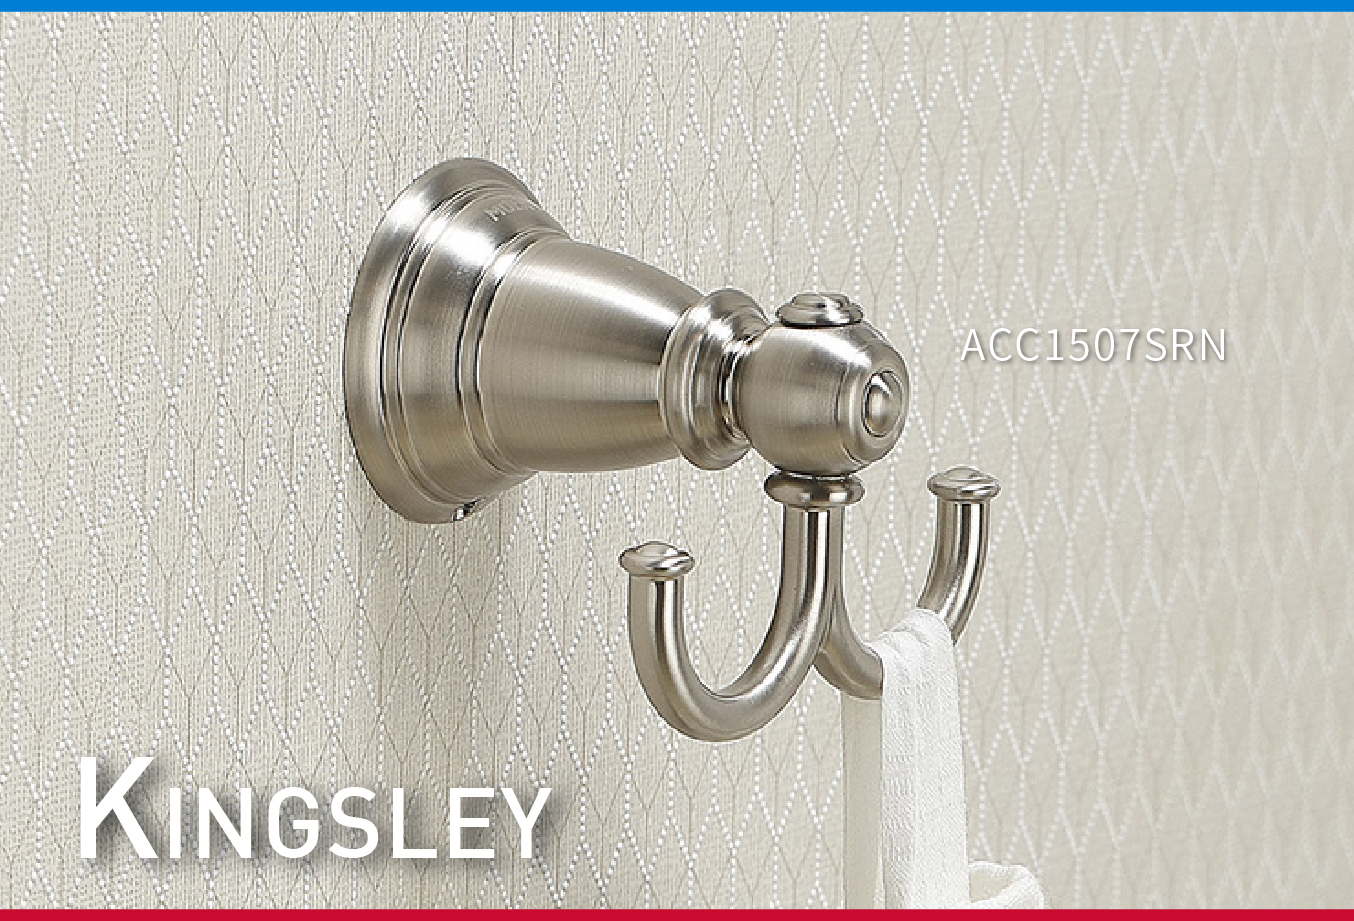 America Moen Kingsley Main Image (Accessories)